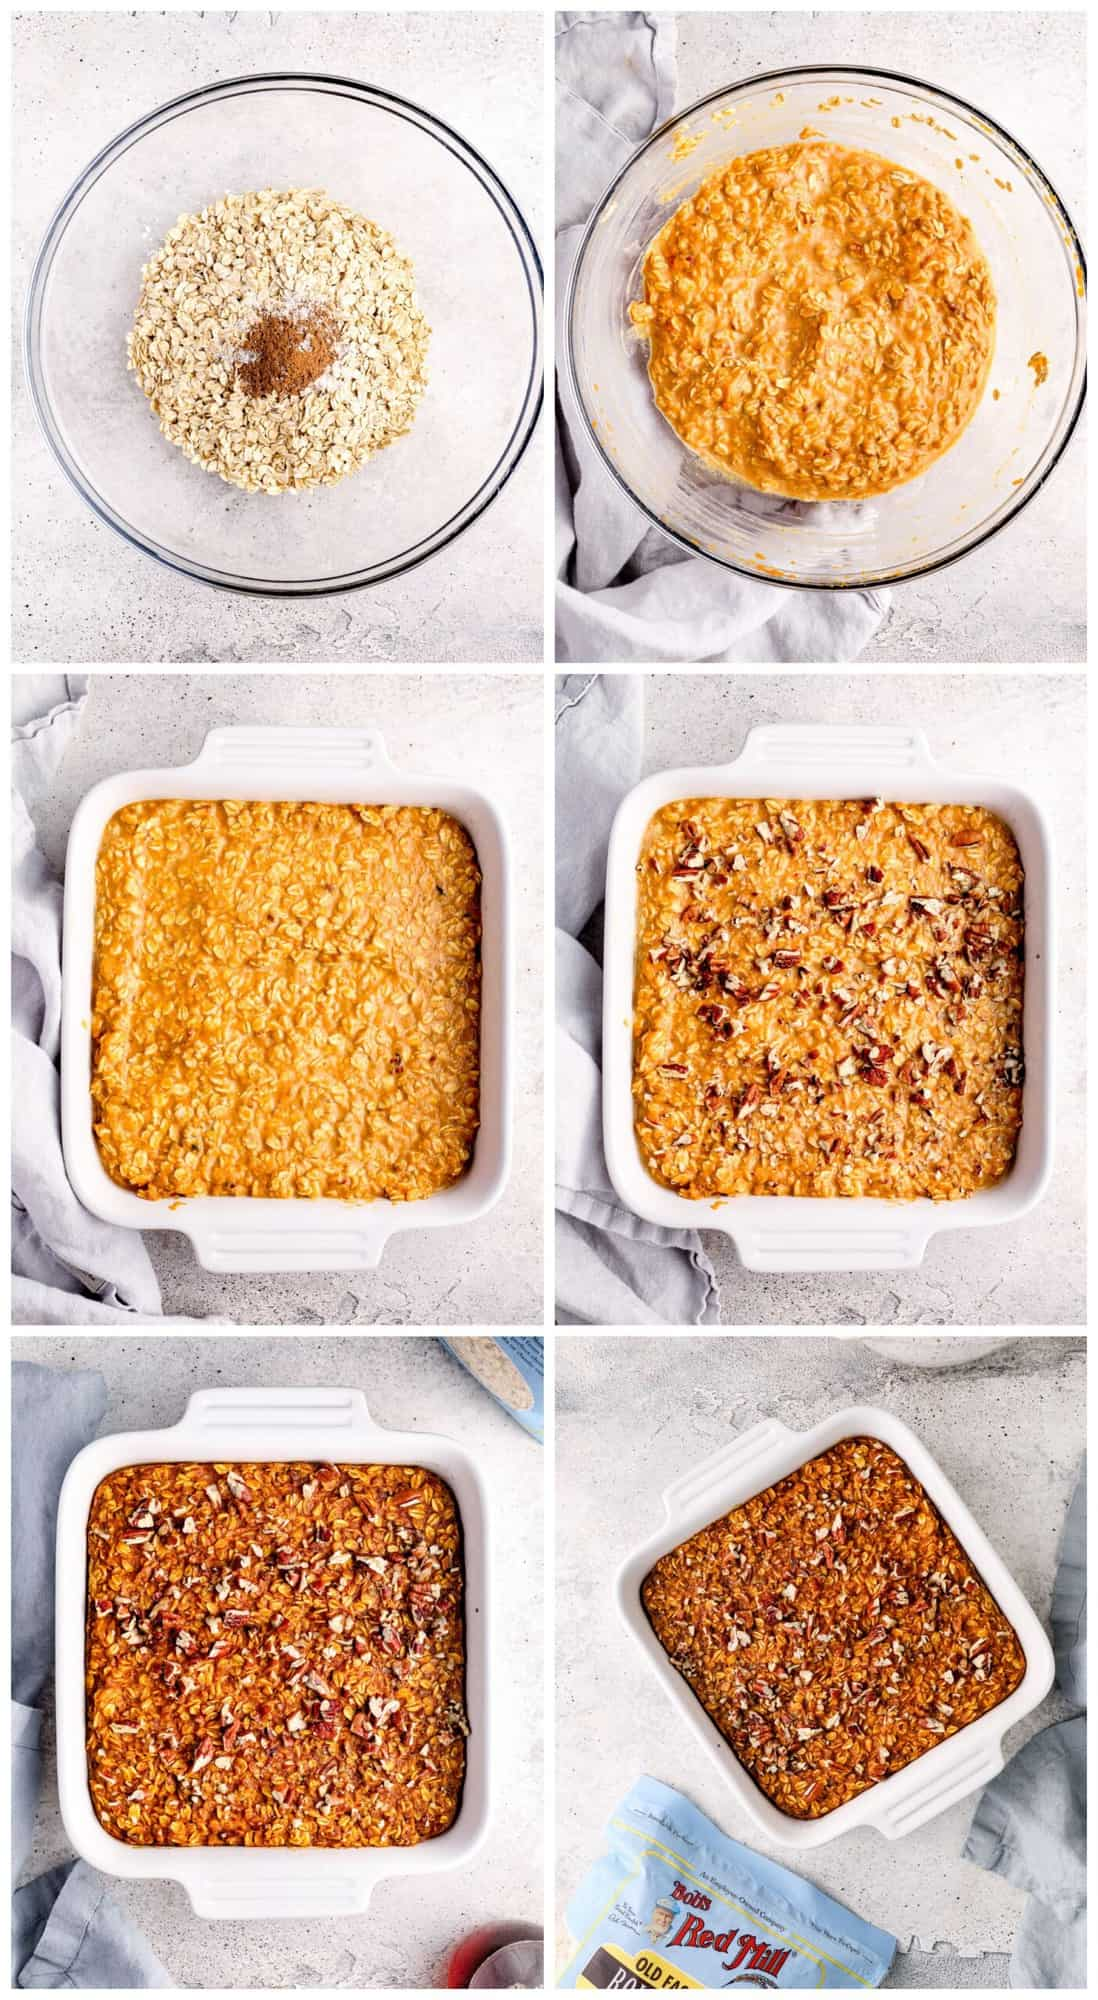 step by step photos for hot to make pumpkin pie baked oatmeal